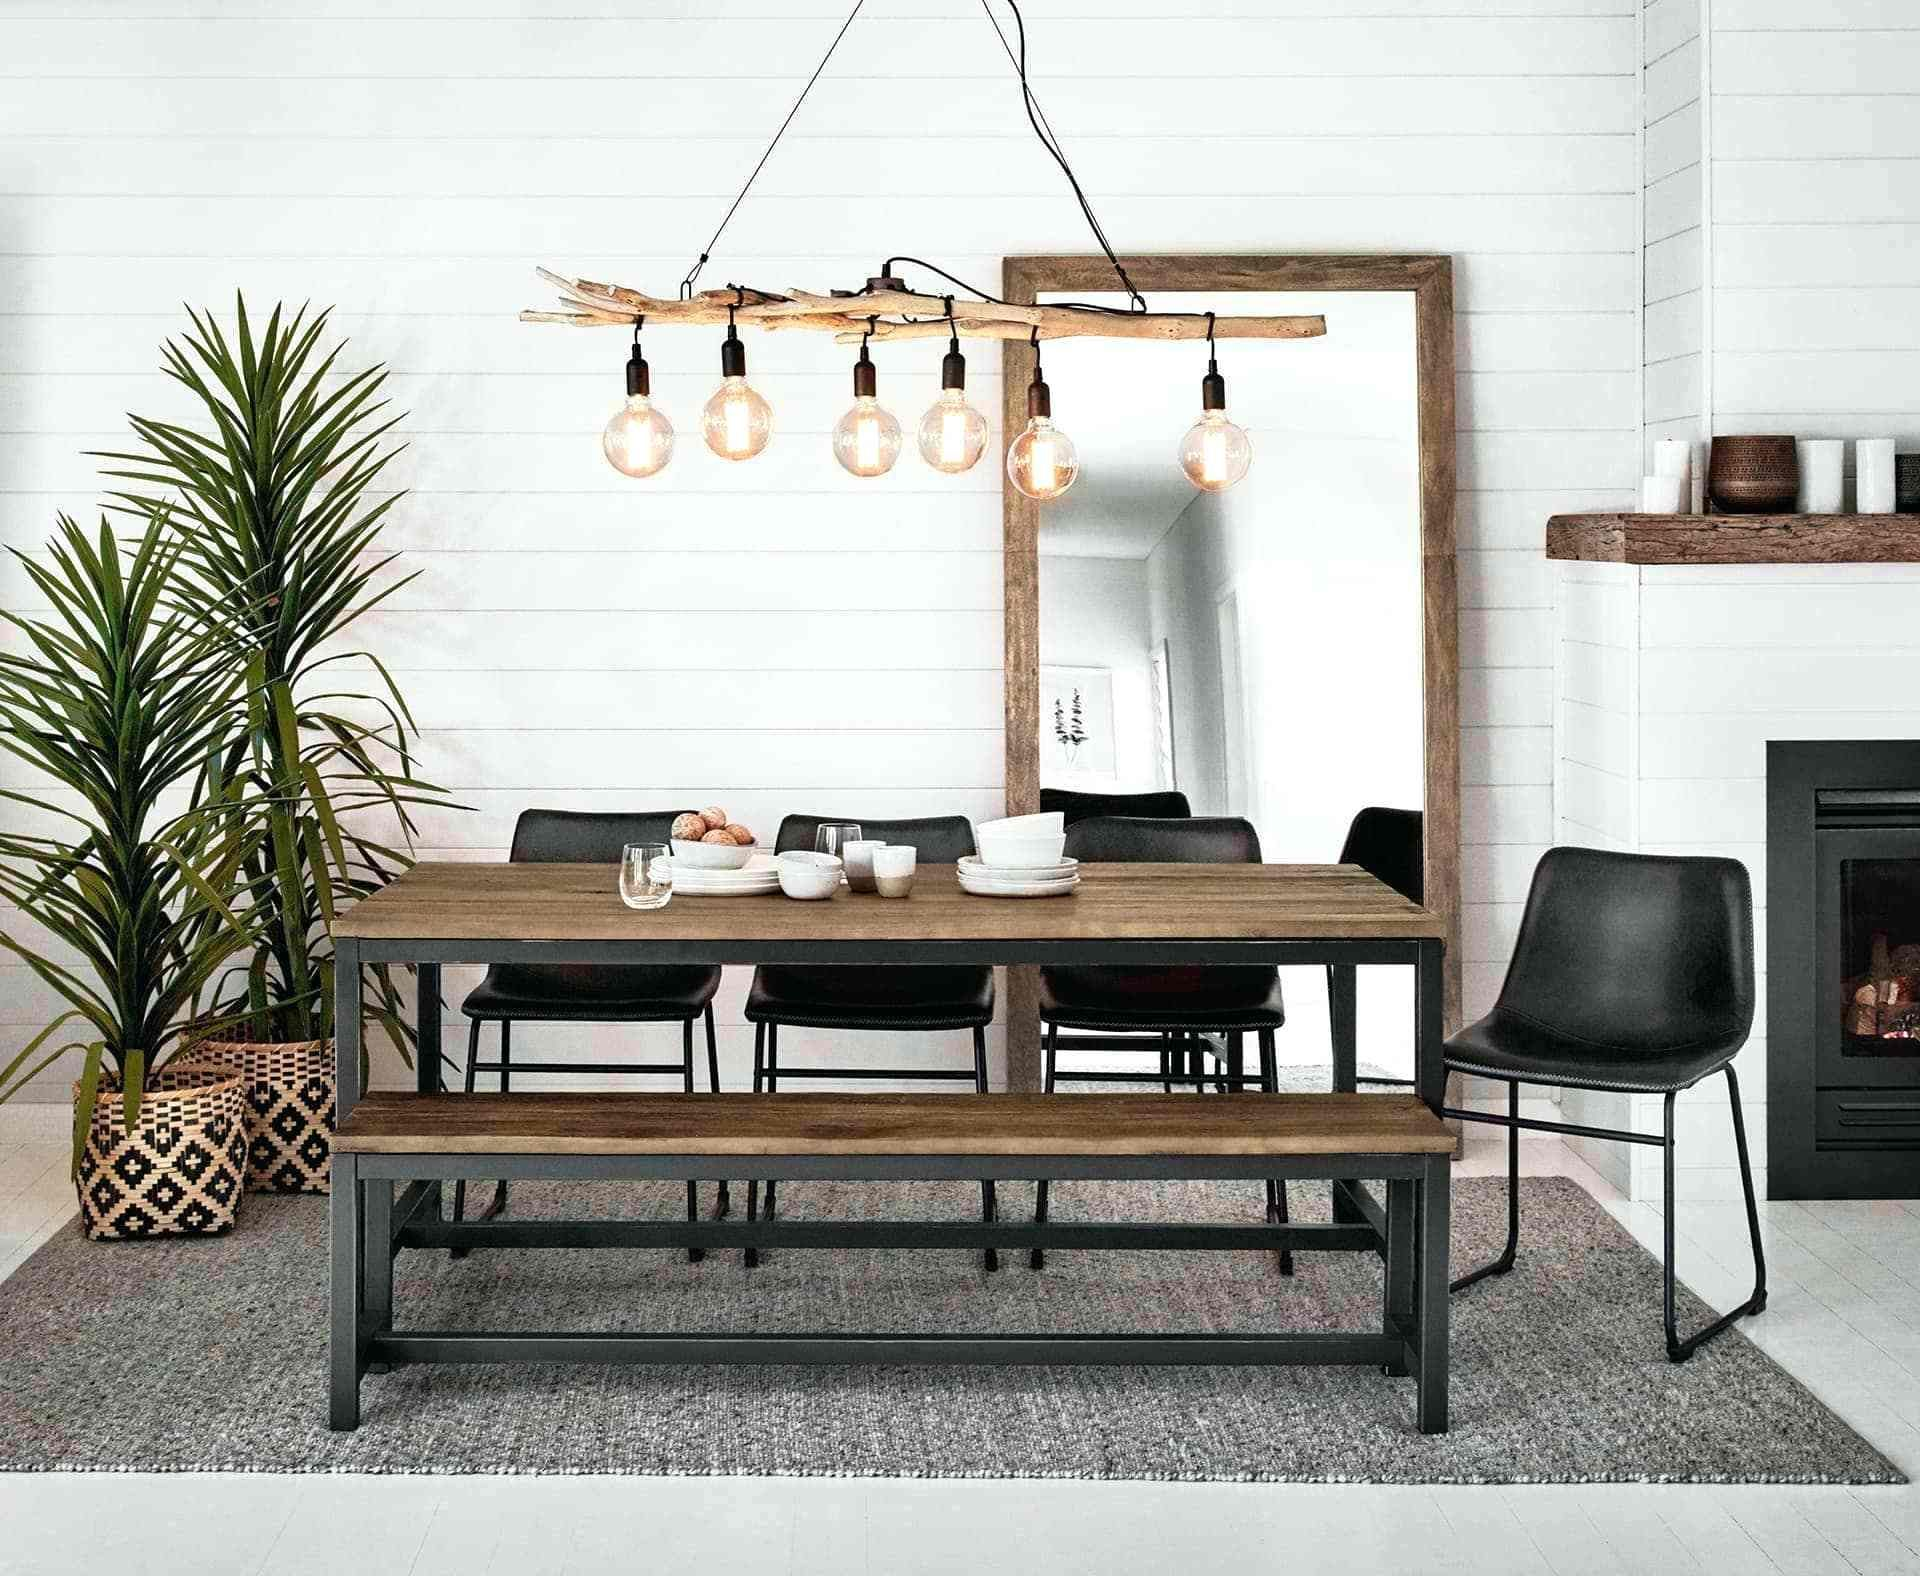 10 Rugs For Under Kitchen Table Most Of The Brilliant And Also